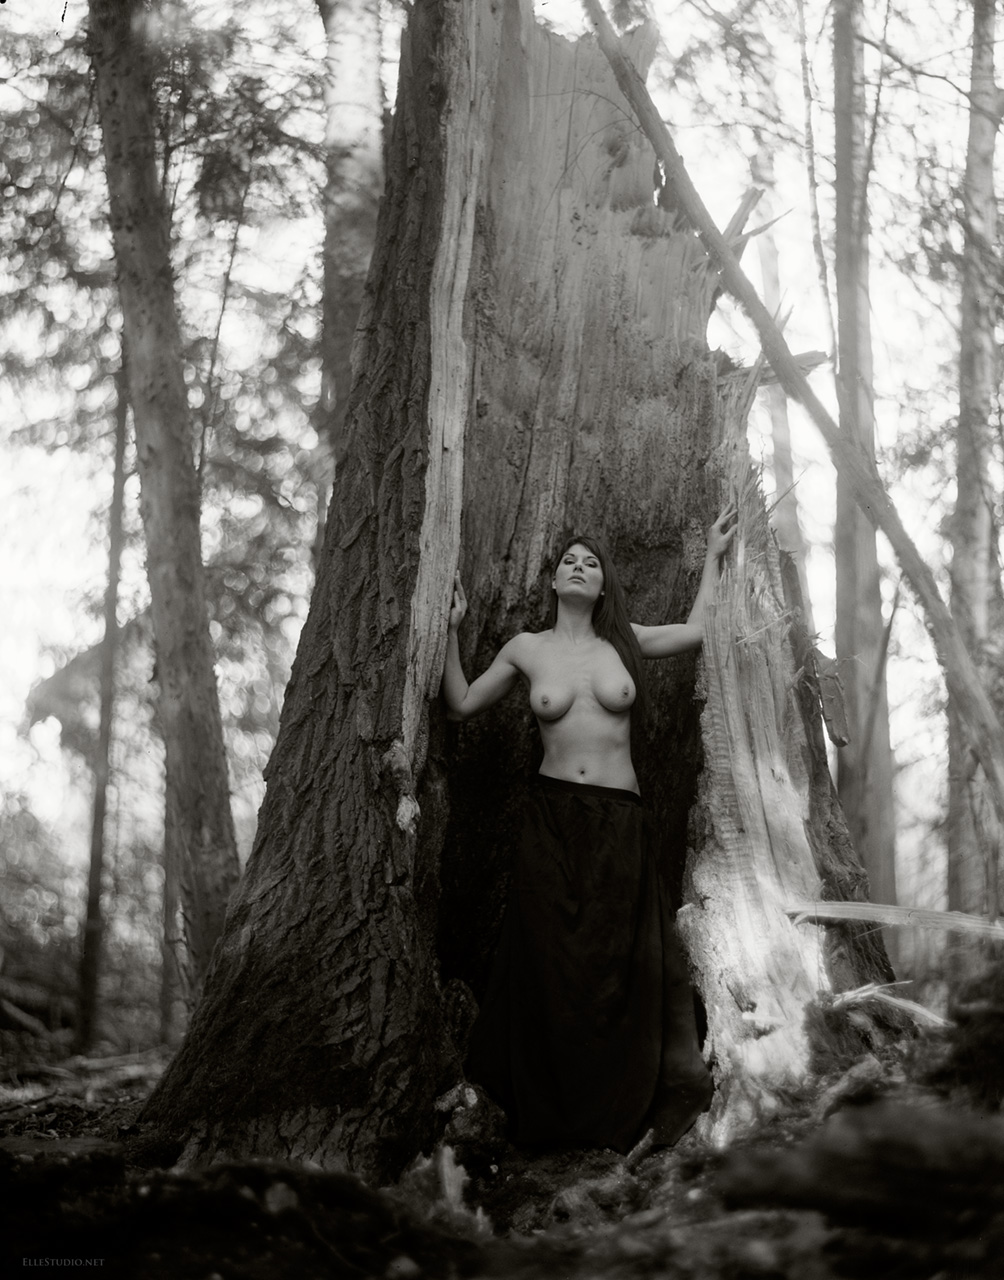 Forest analog art nude, large format photography in Neuchâtel, Switzerland, by Fabien Queloz